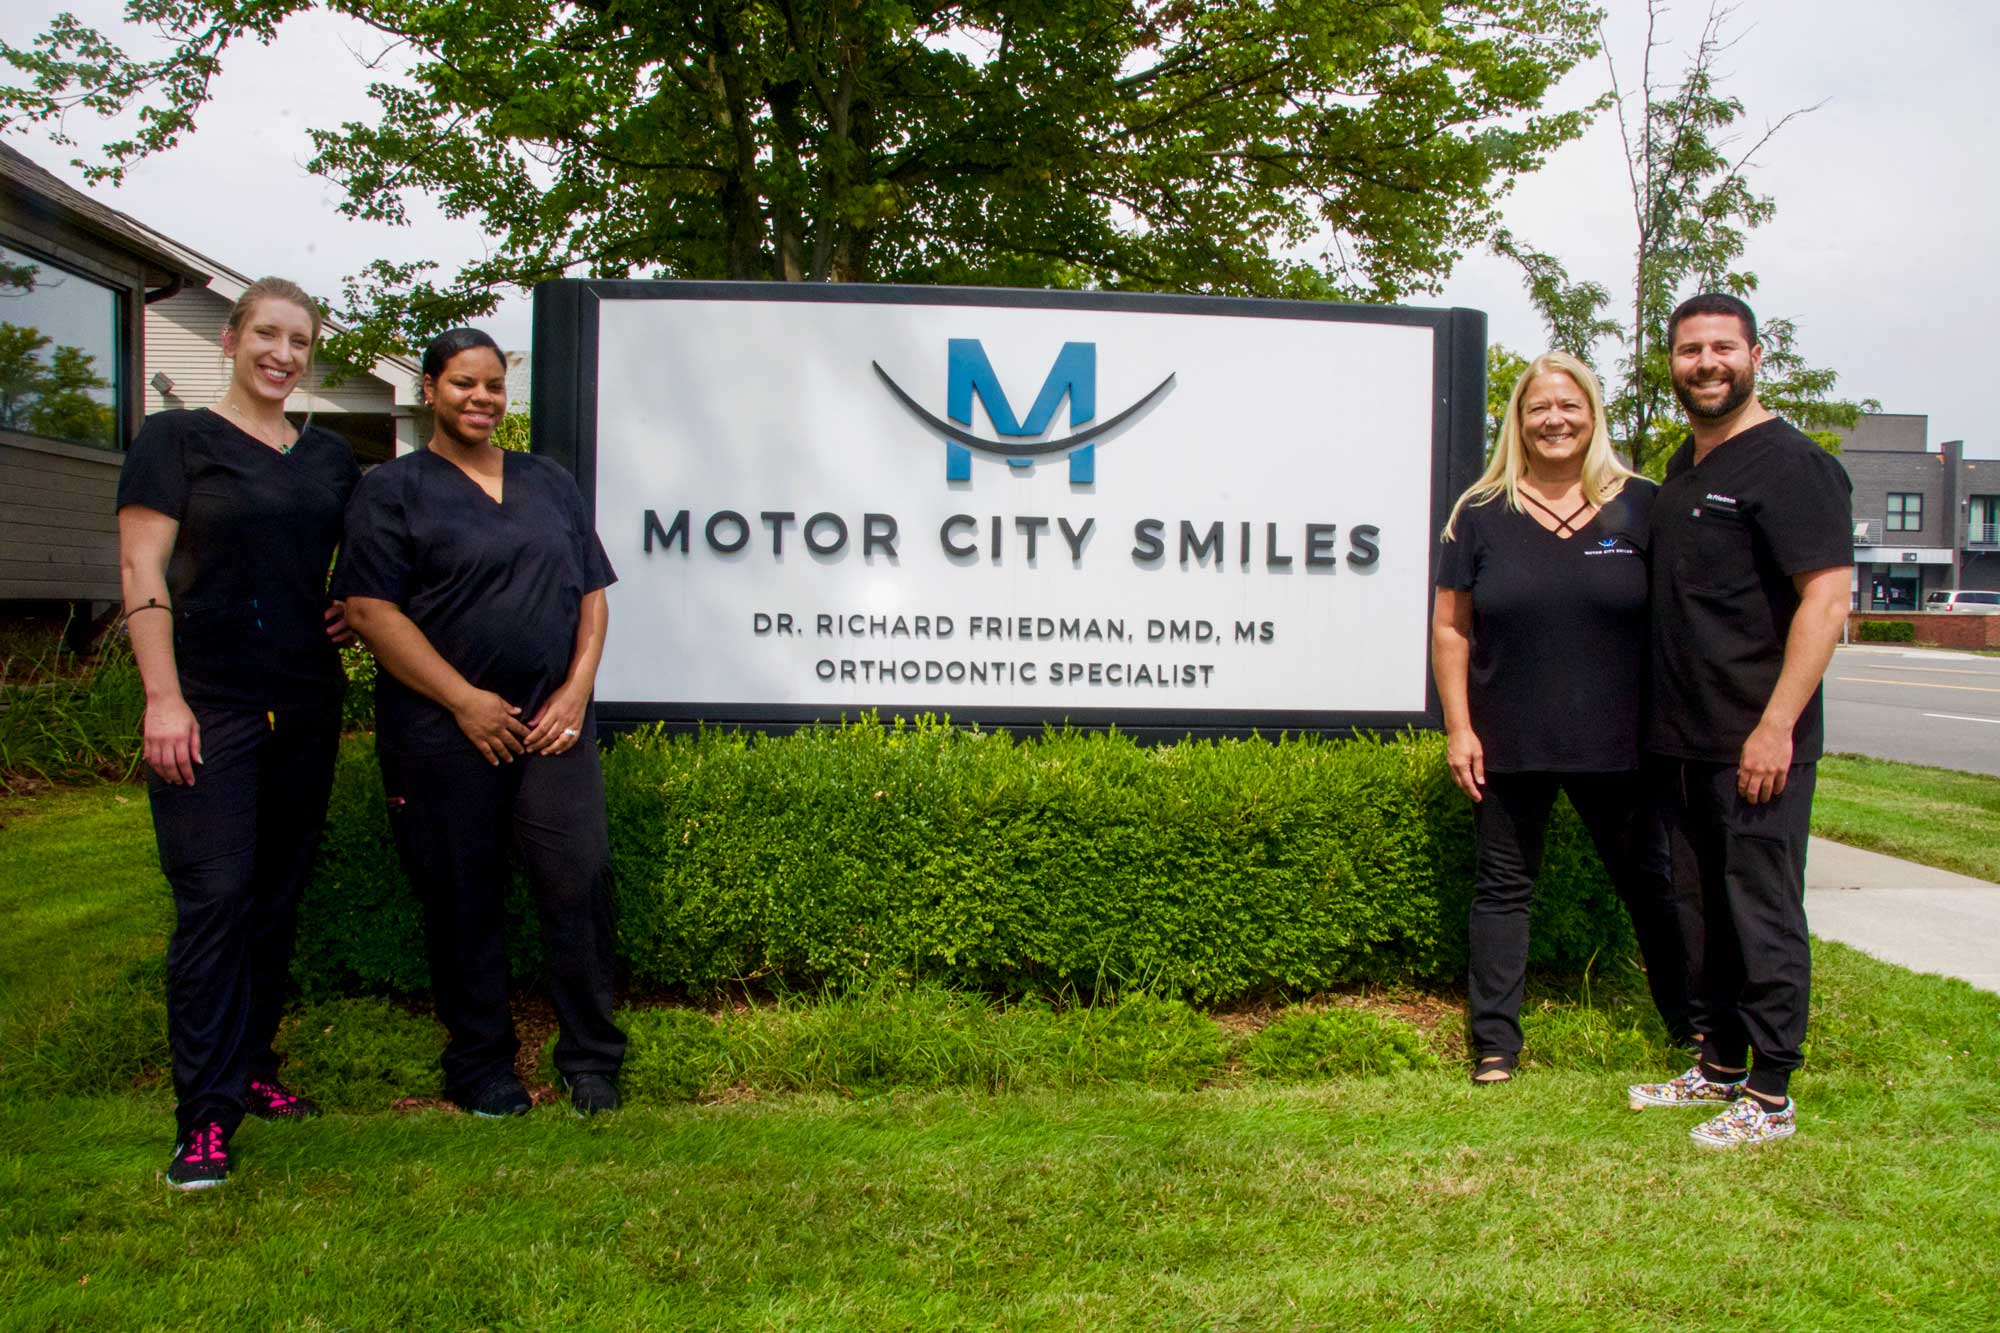 Motor City Smiles staff